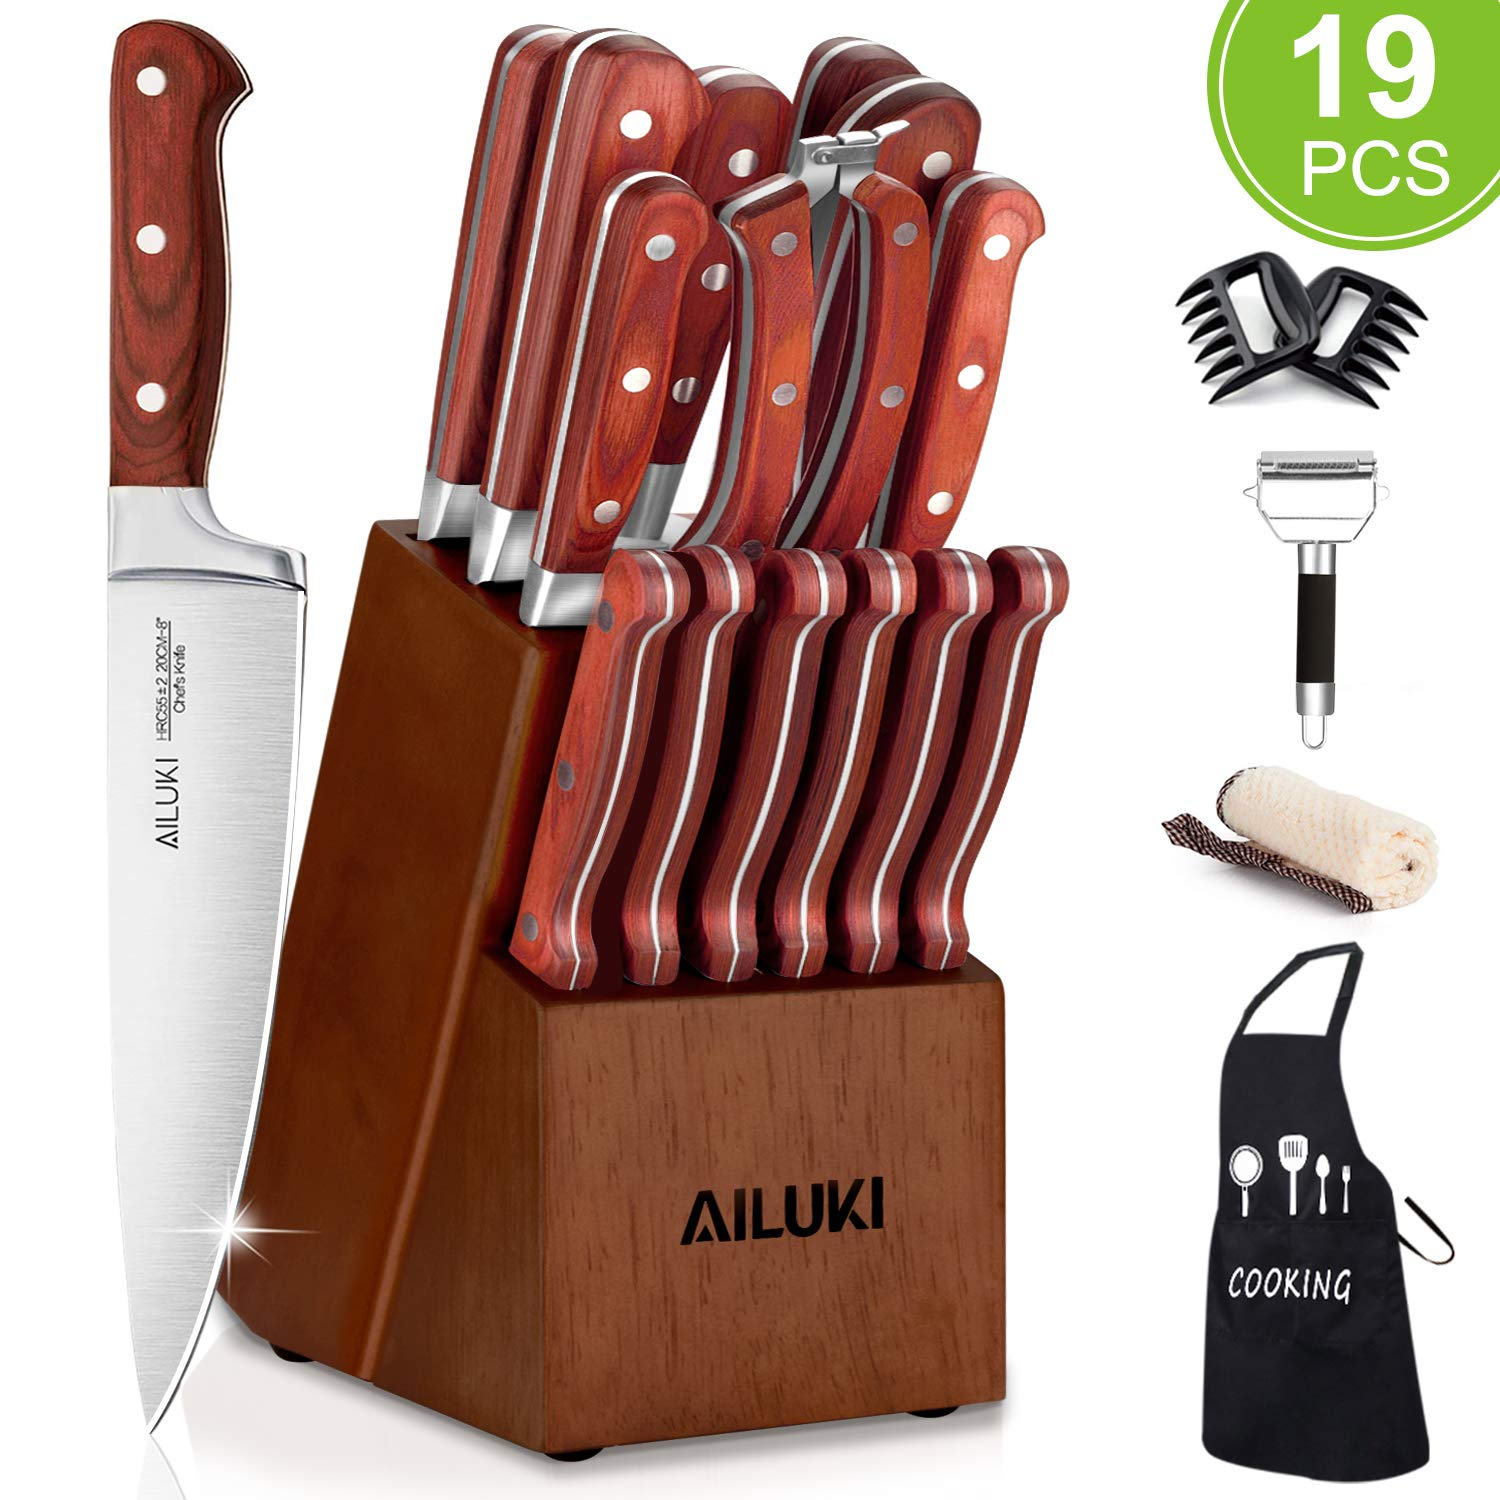 Knife Set, AILUKI 20 - Piece Kitchen Knife Set with Block Wooden and Sharpener, German High Carbon Stainless Steel Chef Knife Set, Pakkawood Ultra Sharp Full Tang Forged Knife Block Set by AILUKI